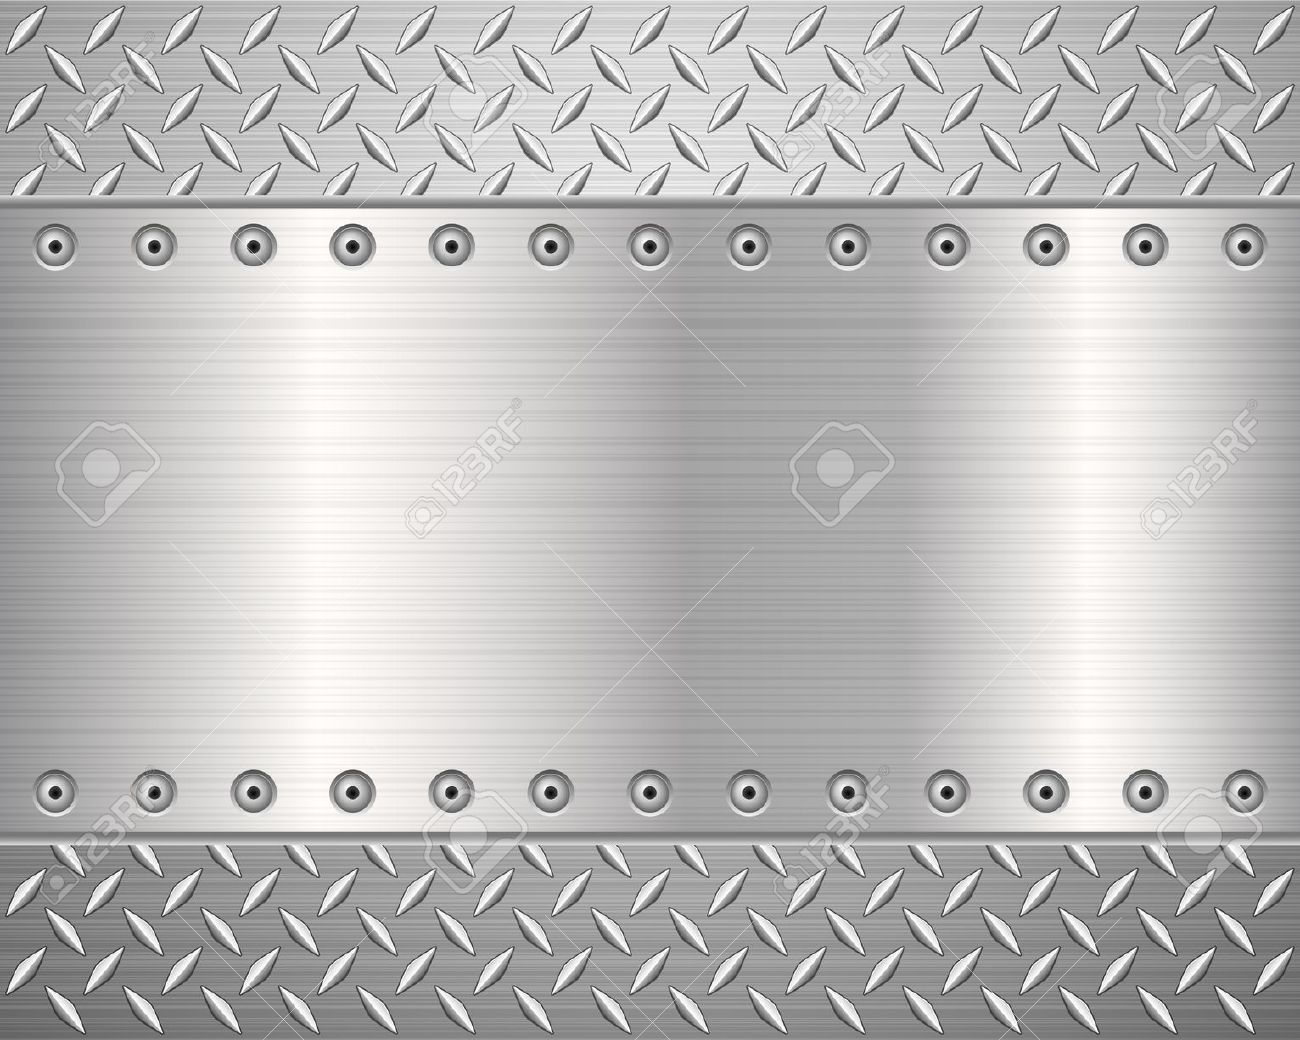 Sheet metal clipart png black and white stock Metal background clipart - ClipartFest png black and white stock